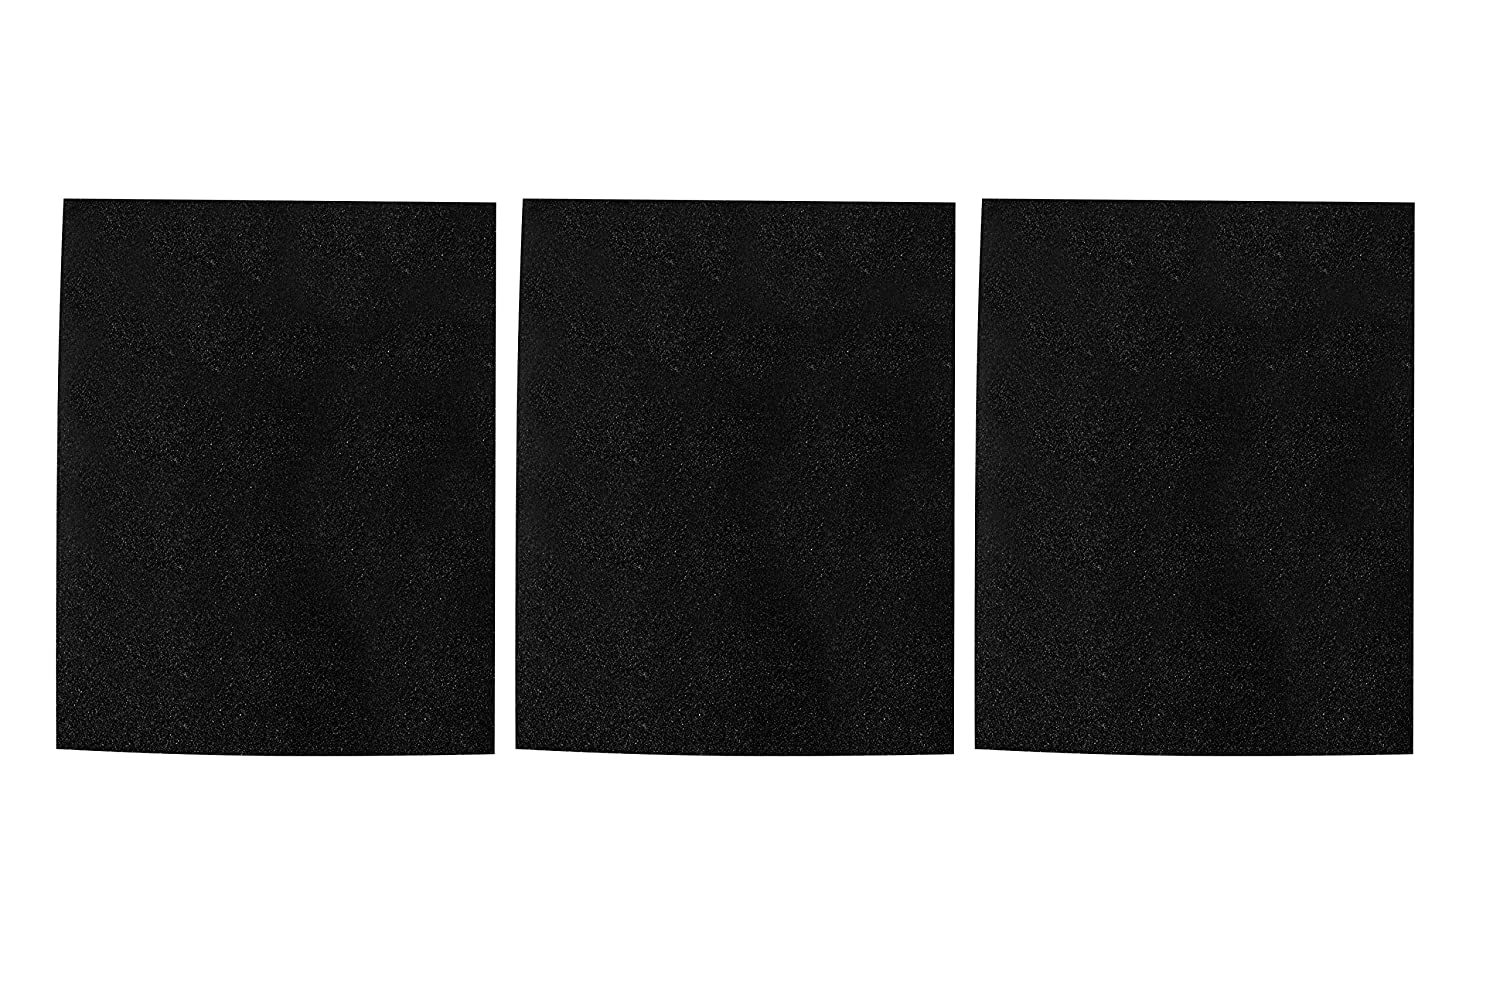 LifeSupplyUSA Pack of 3 Replacement Pre-Filters fit Air Doctor Air Cleaner Purifier